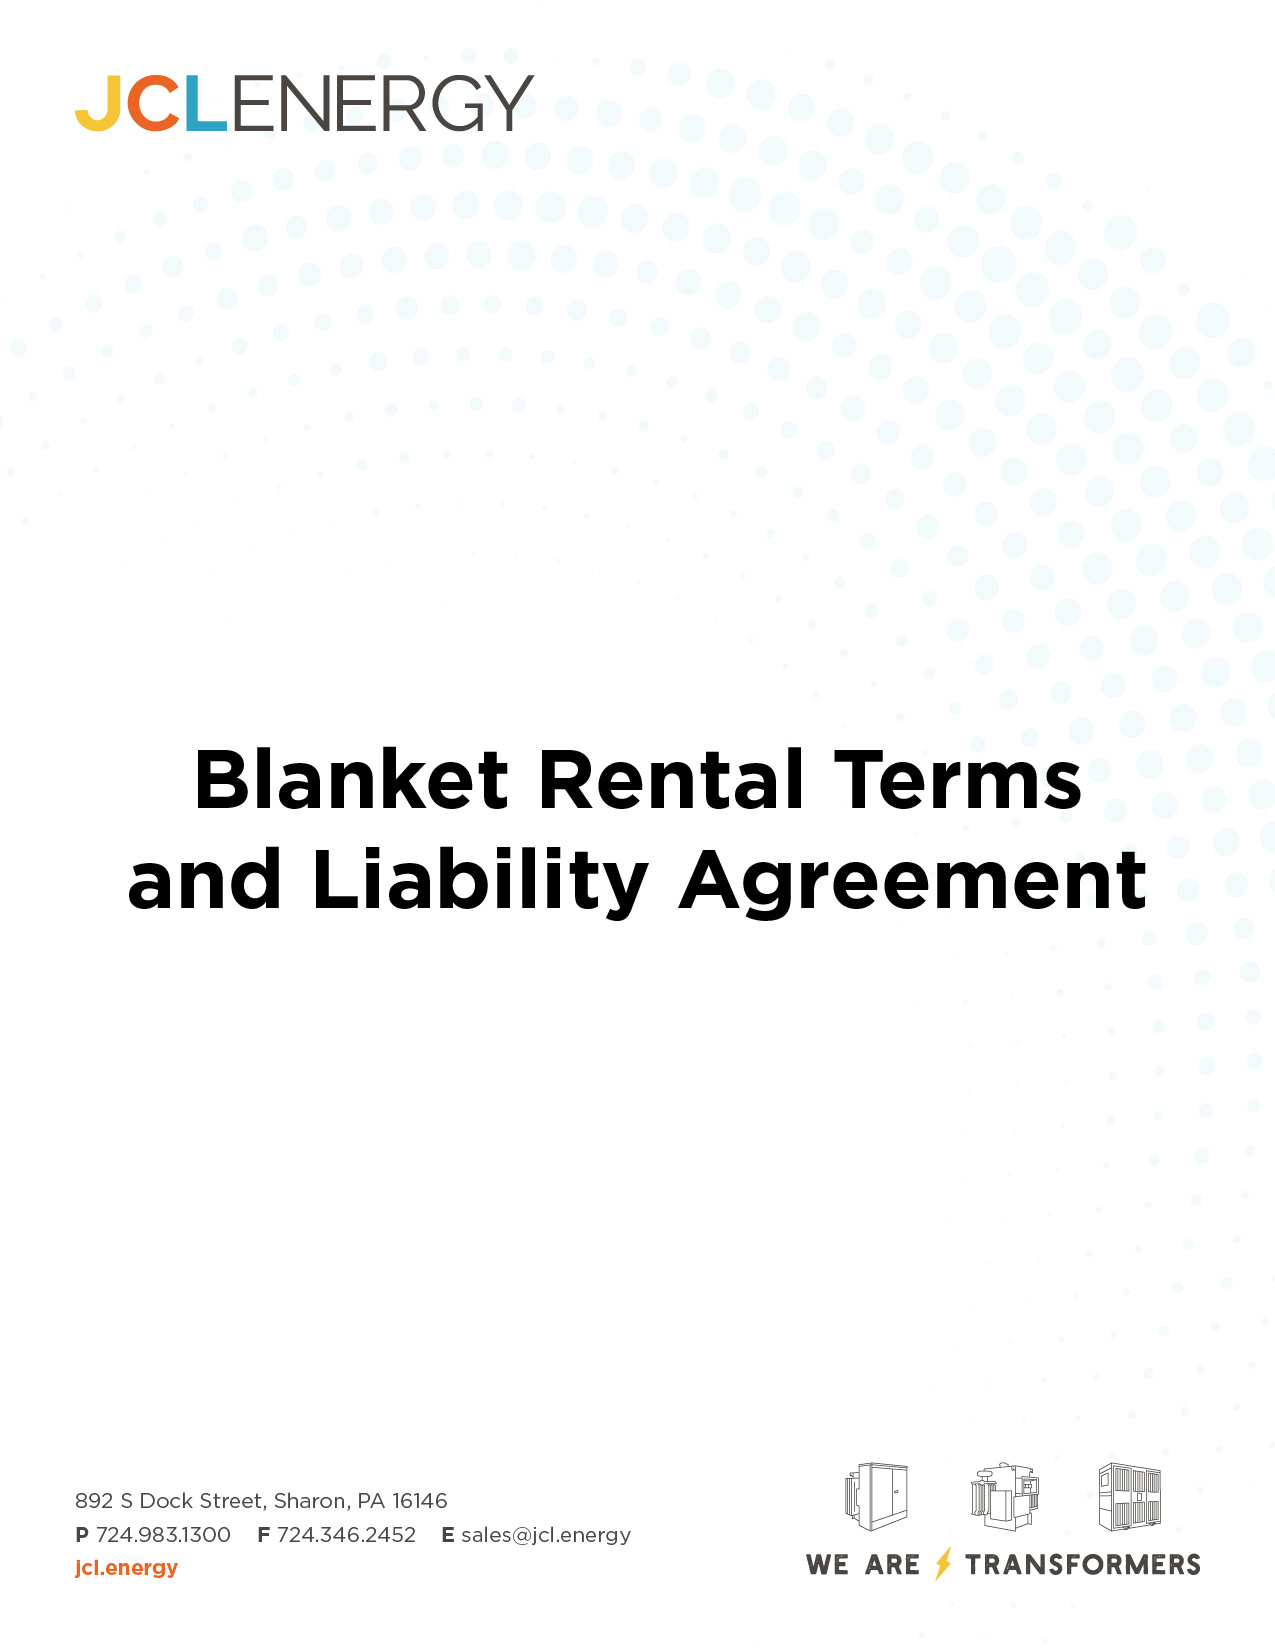 JCL Energy Rental Terms